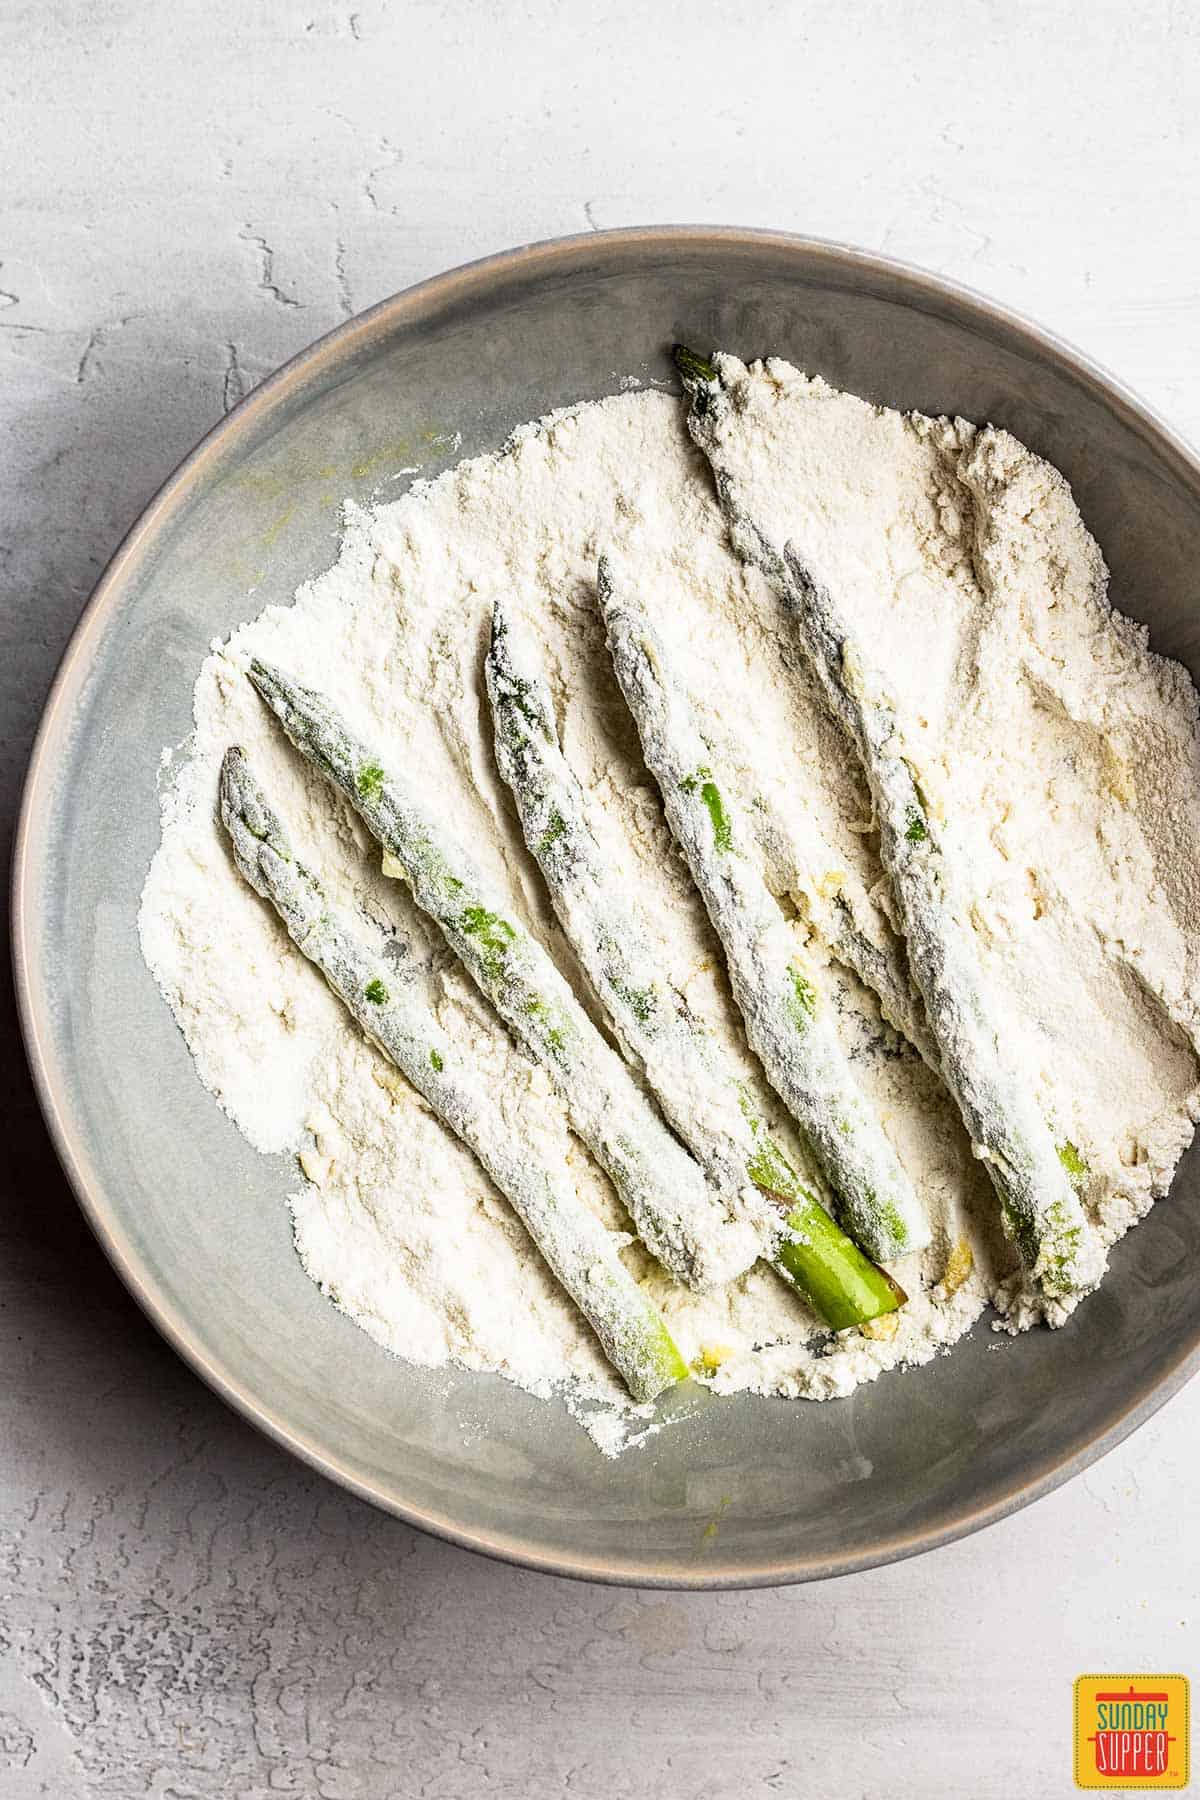 Coating asparagus in flour for air fryer asparagus